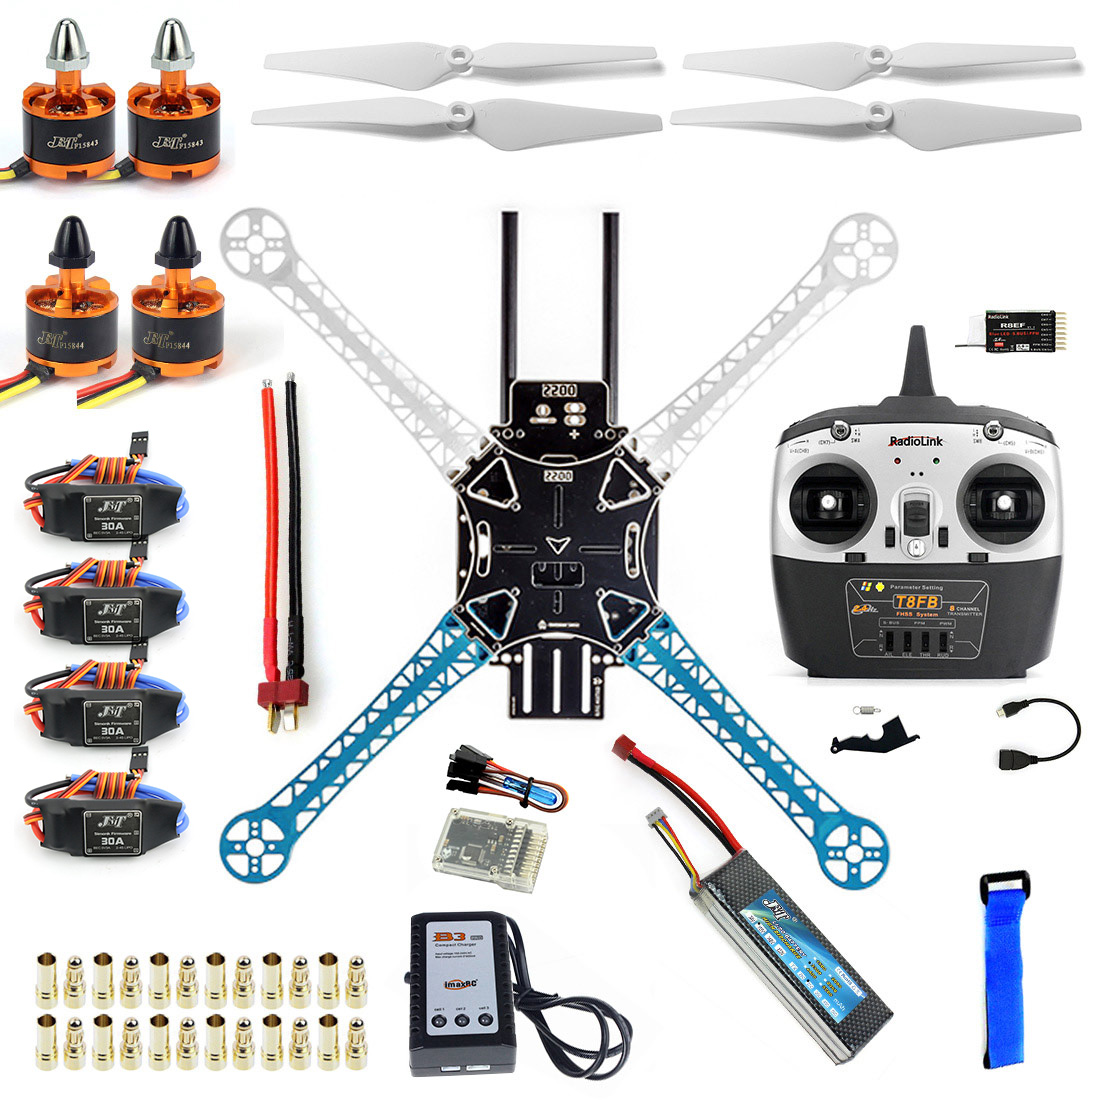 DIY Drone Kit And F450 Upgrade Quadcopter With High Strength Plastic Material